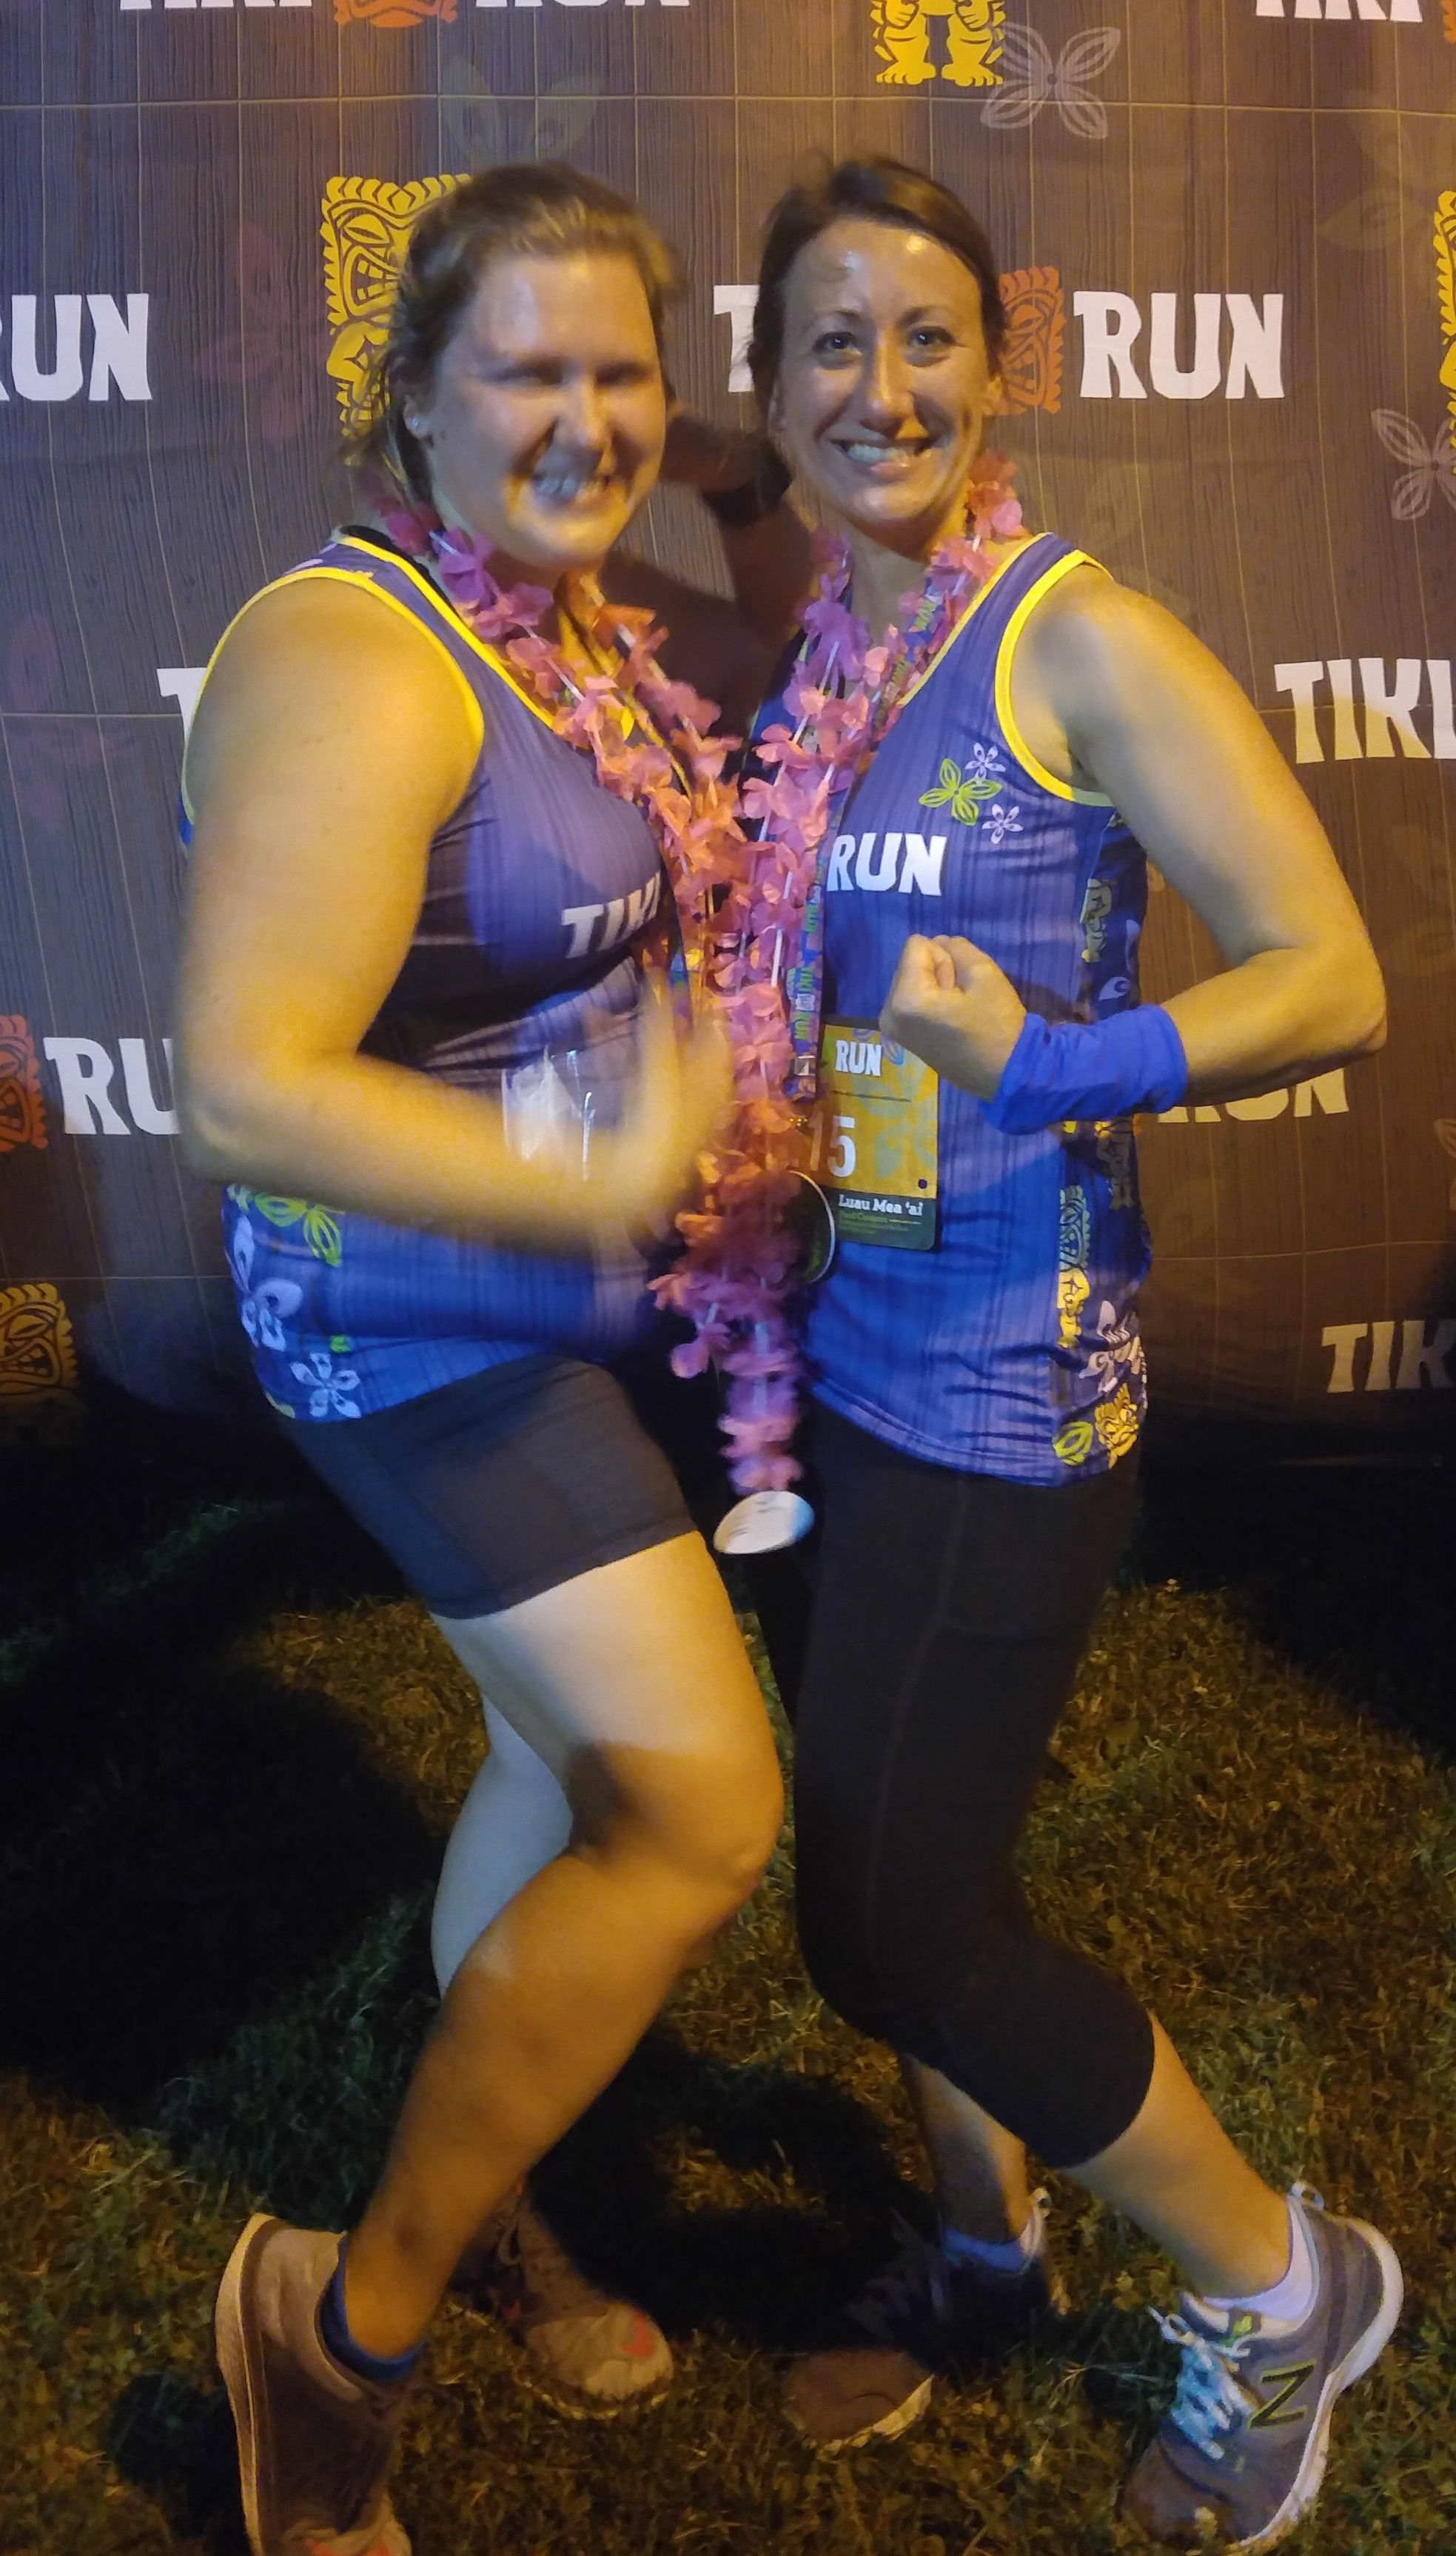 Run the Tiki Run - Check! Ran the whole thing! Not too shabby for not being a runner and it was my first 5k.